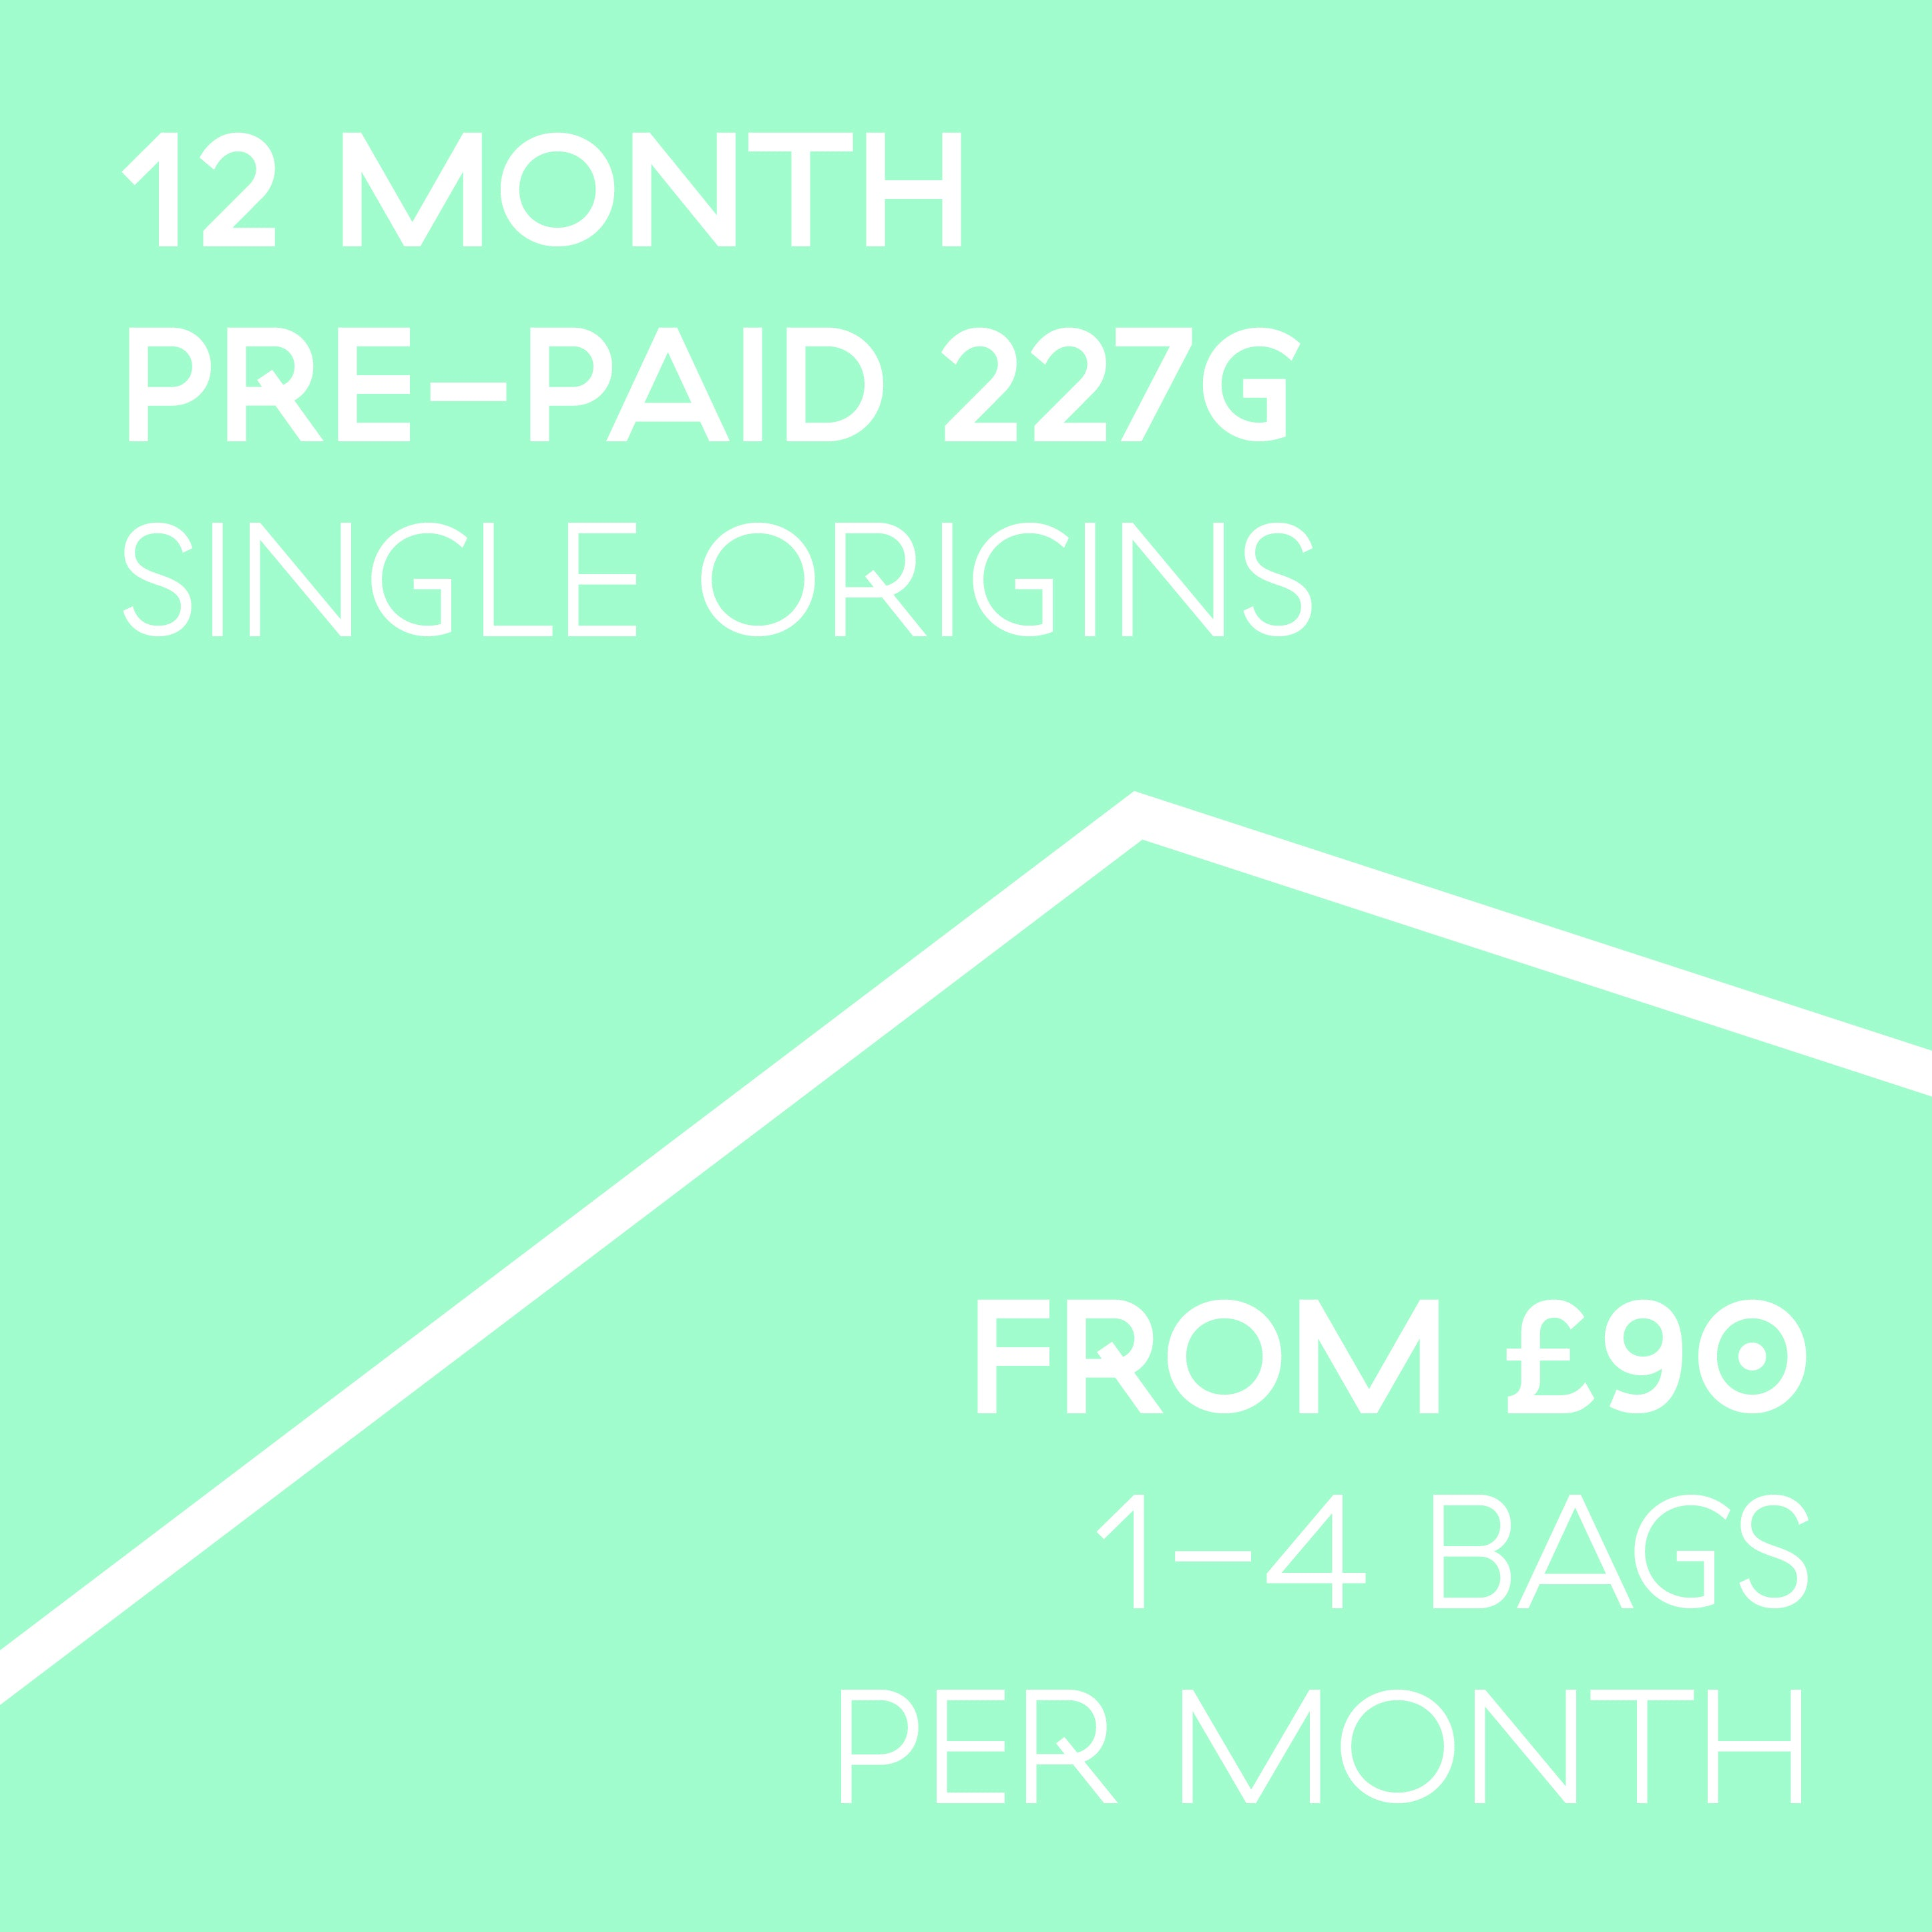 12 Month Pre-Paid Subscription 227g | 1-4 bags a month